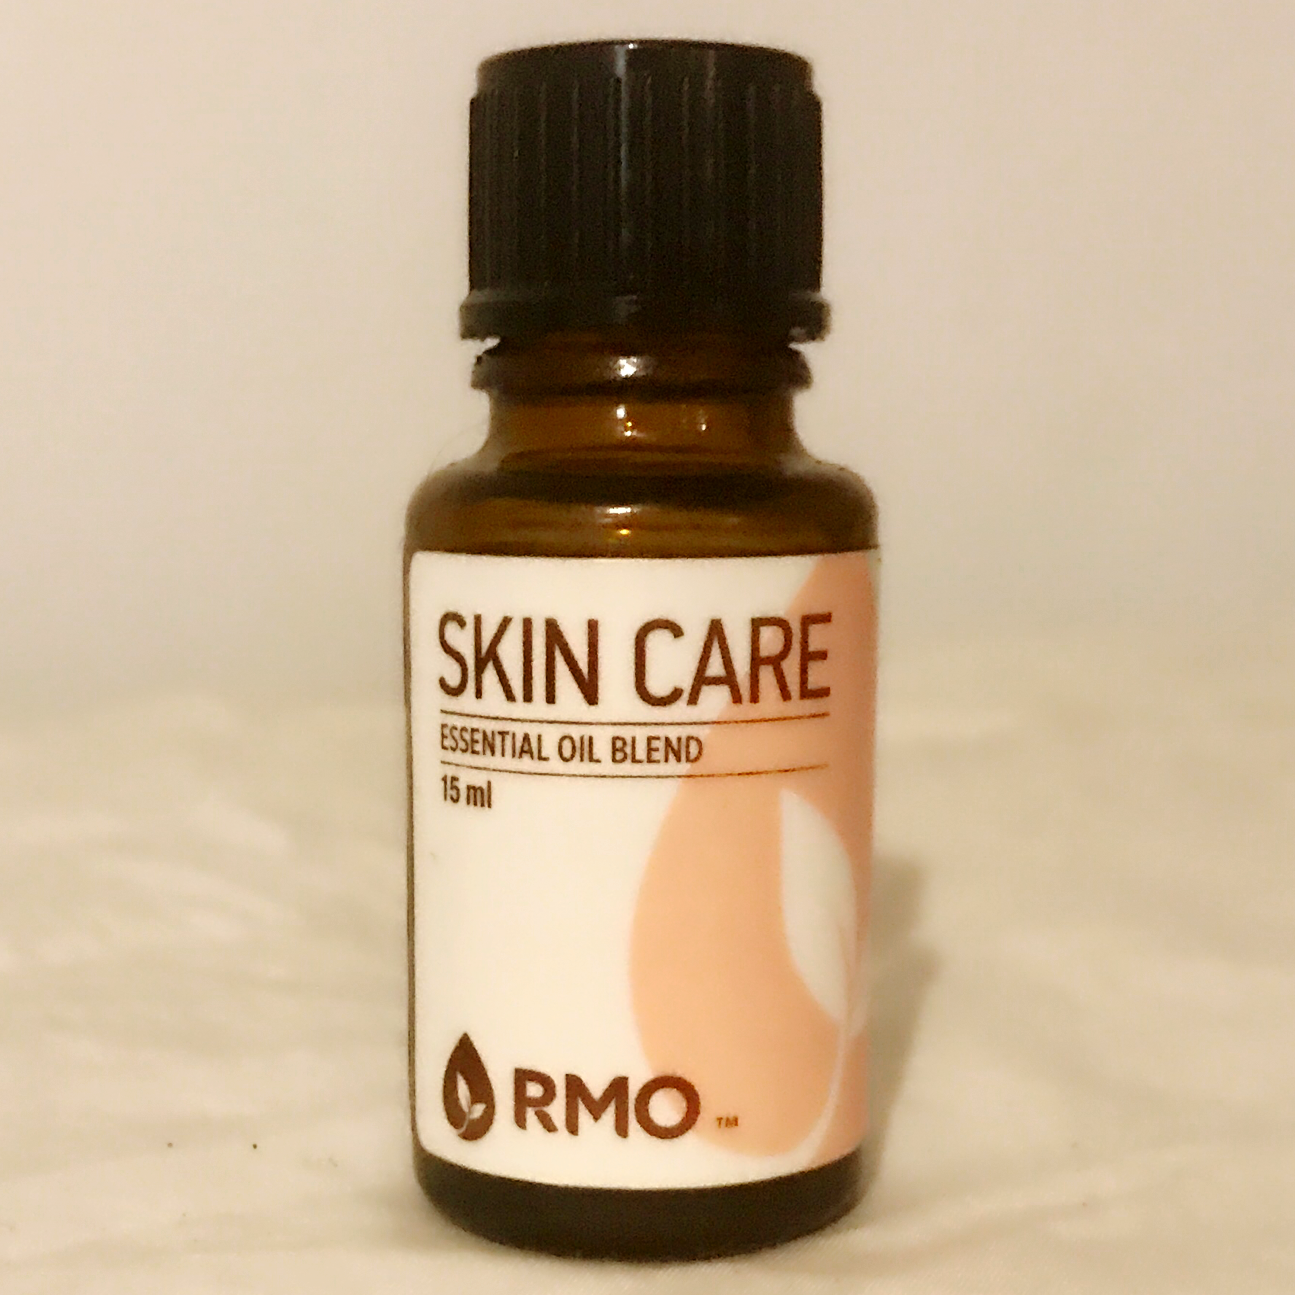 Seize Control of Your Skin-Care: DIY Healthy & Natural